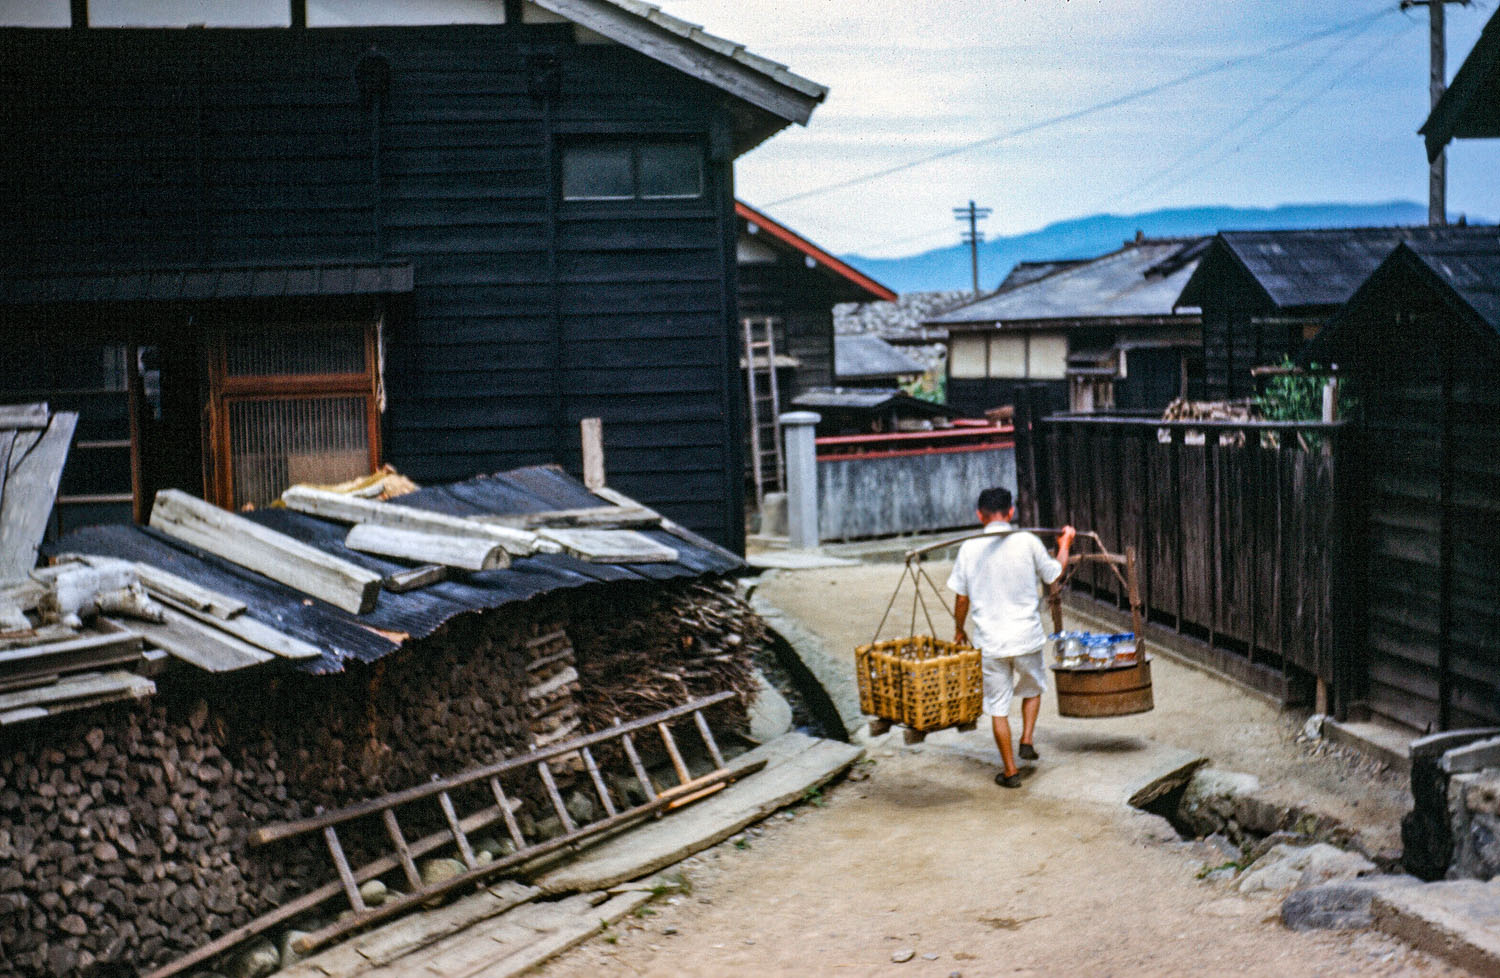 492- Man with Baskets Walking through village